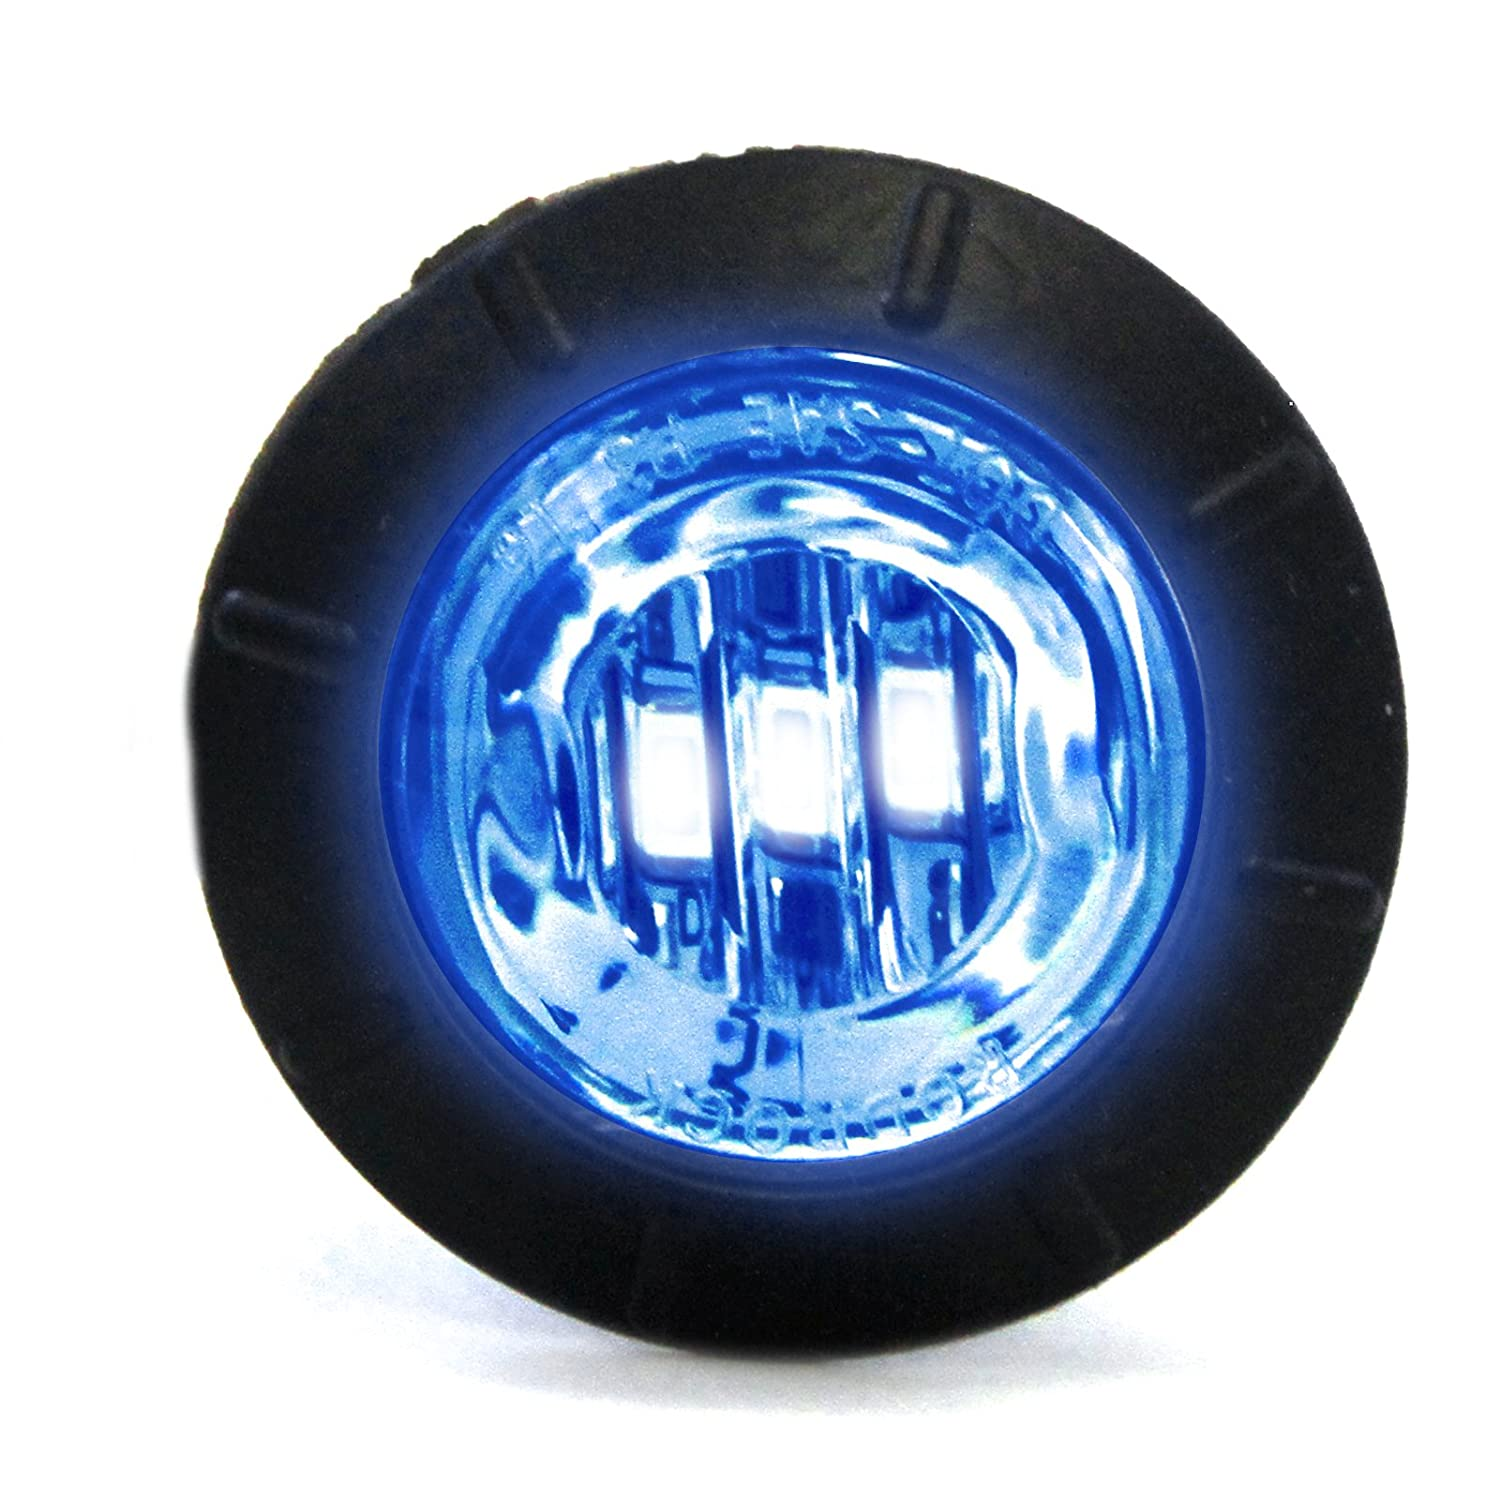 Red Hound Auto Clear/Blue LED Side Marker Light 3/4' Clearance Truck Trailer Pickup Extra Bright